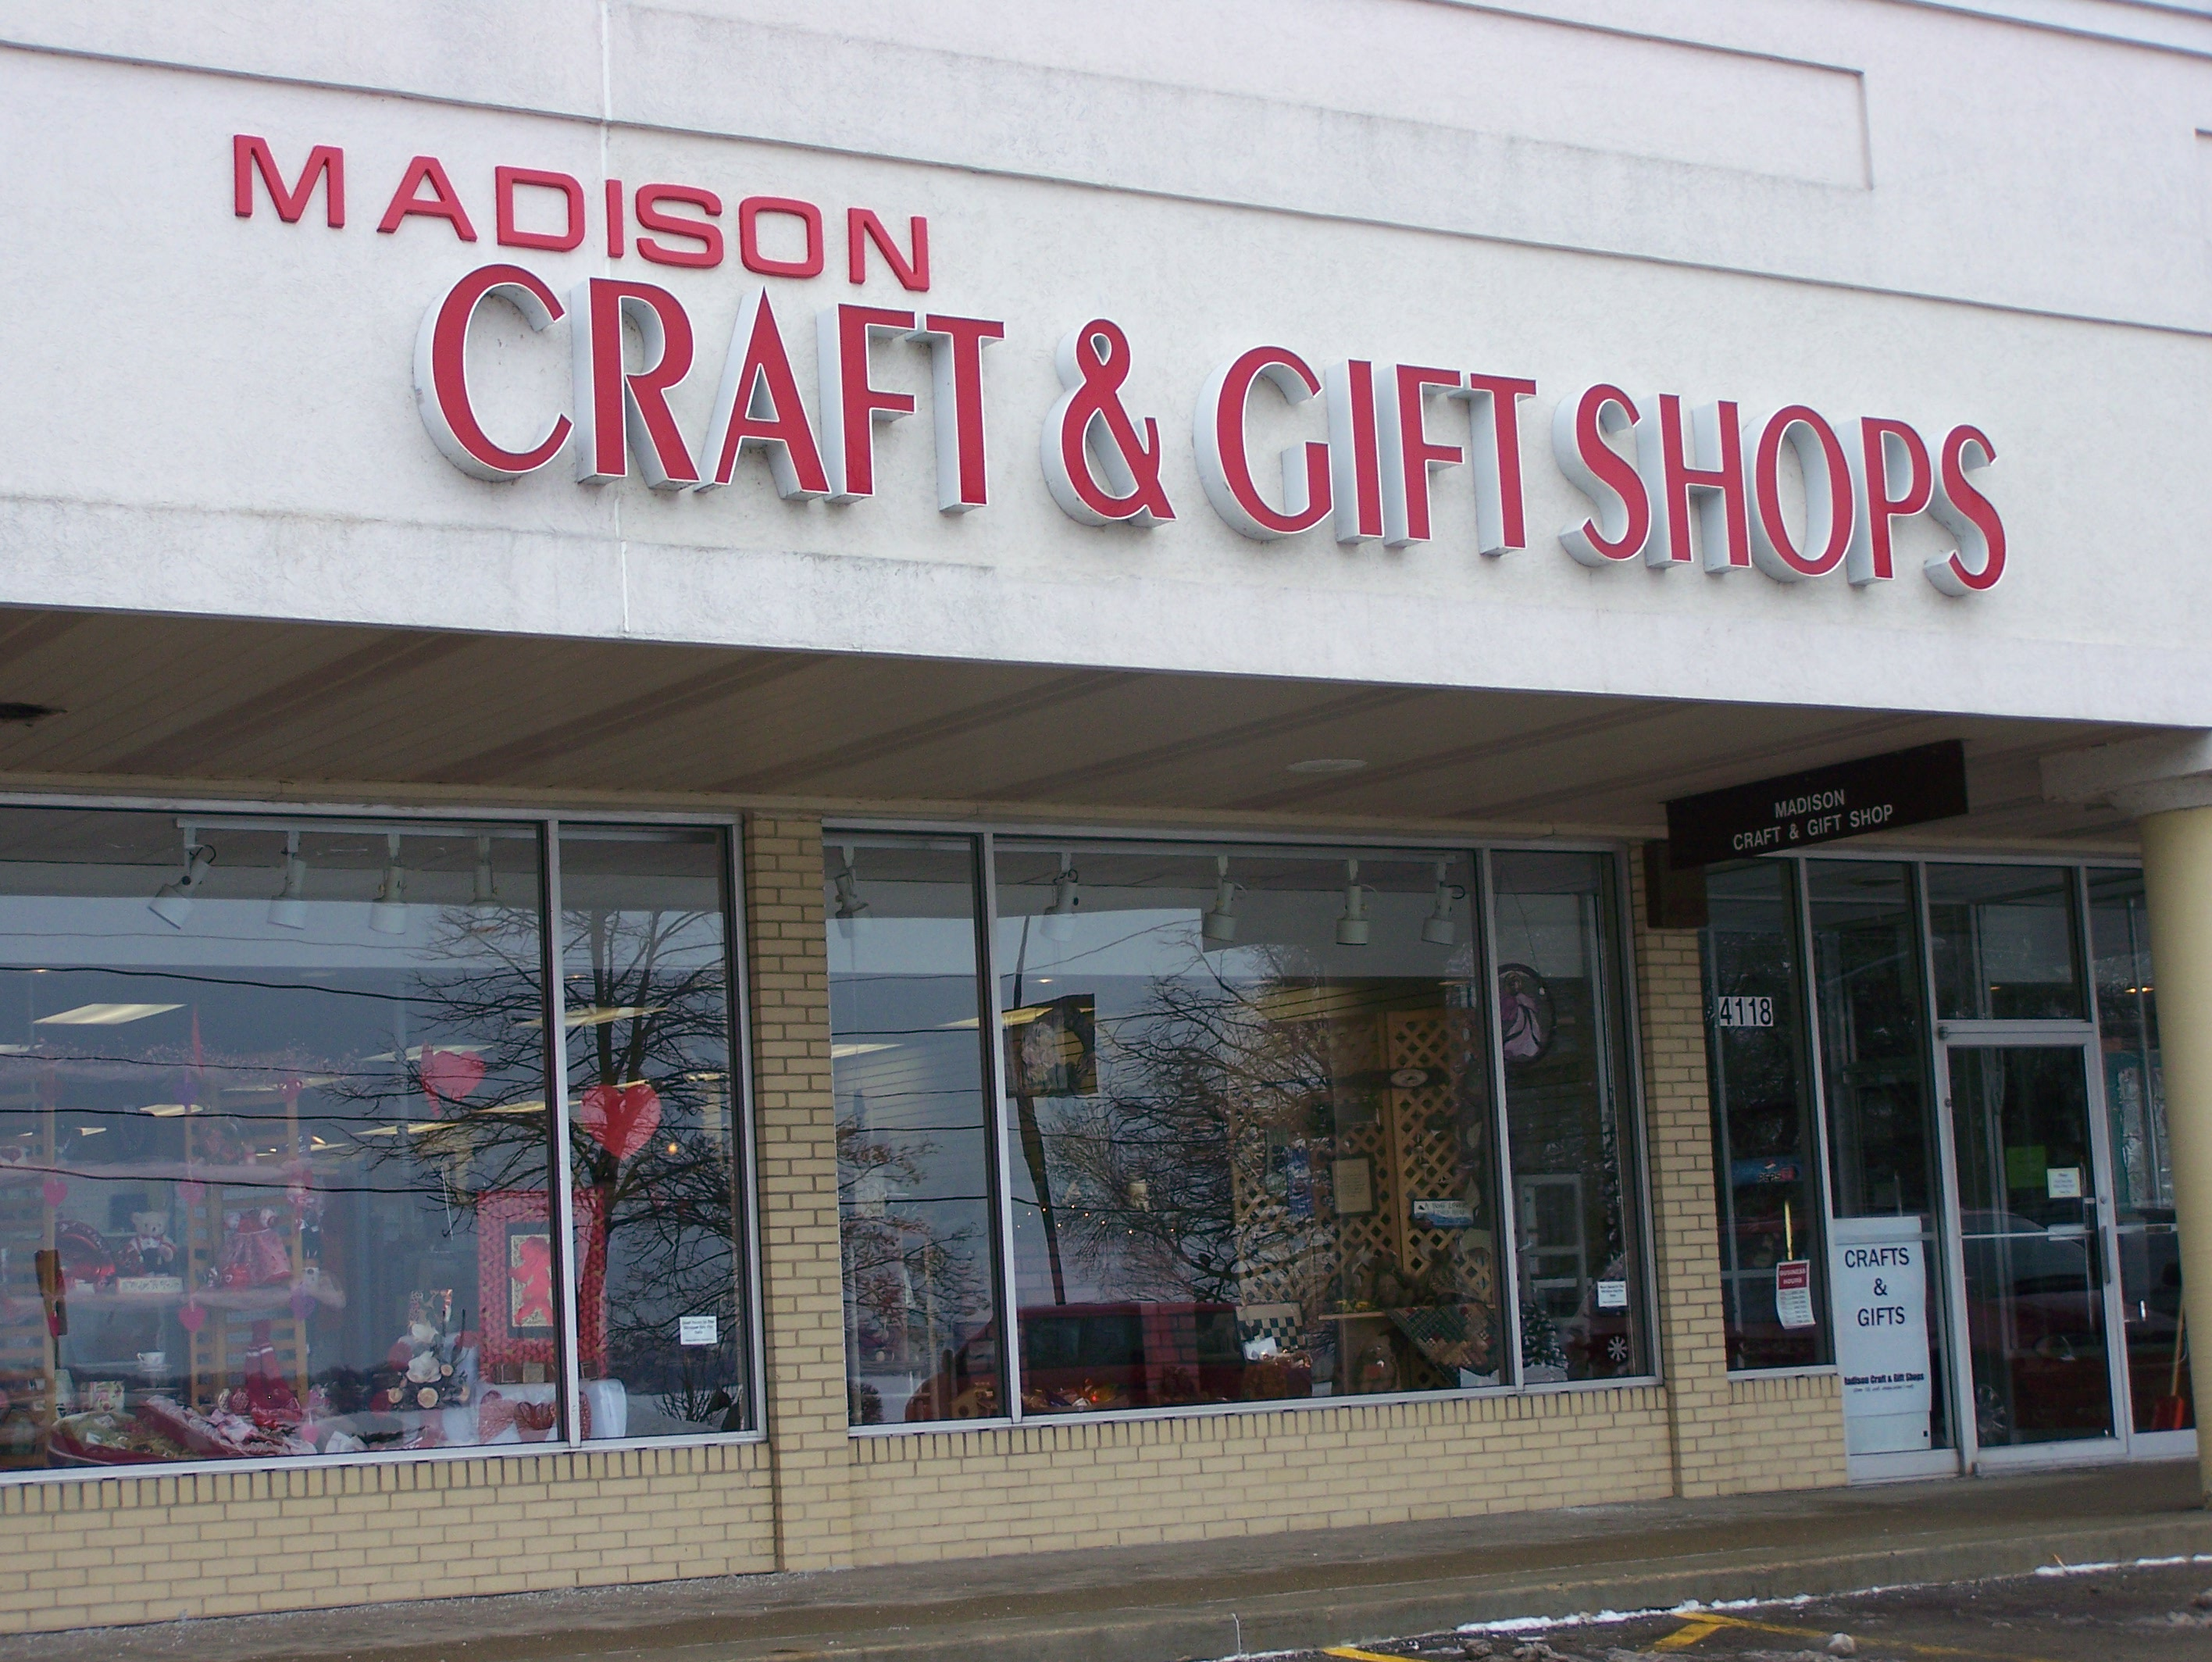 Madison Craft & Gift Shop